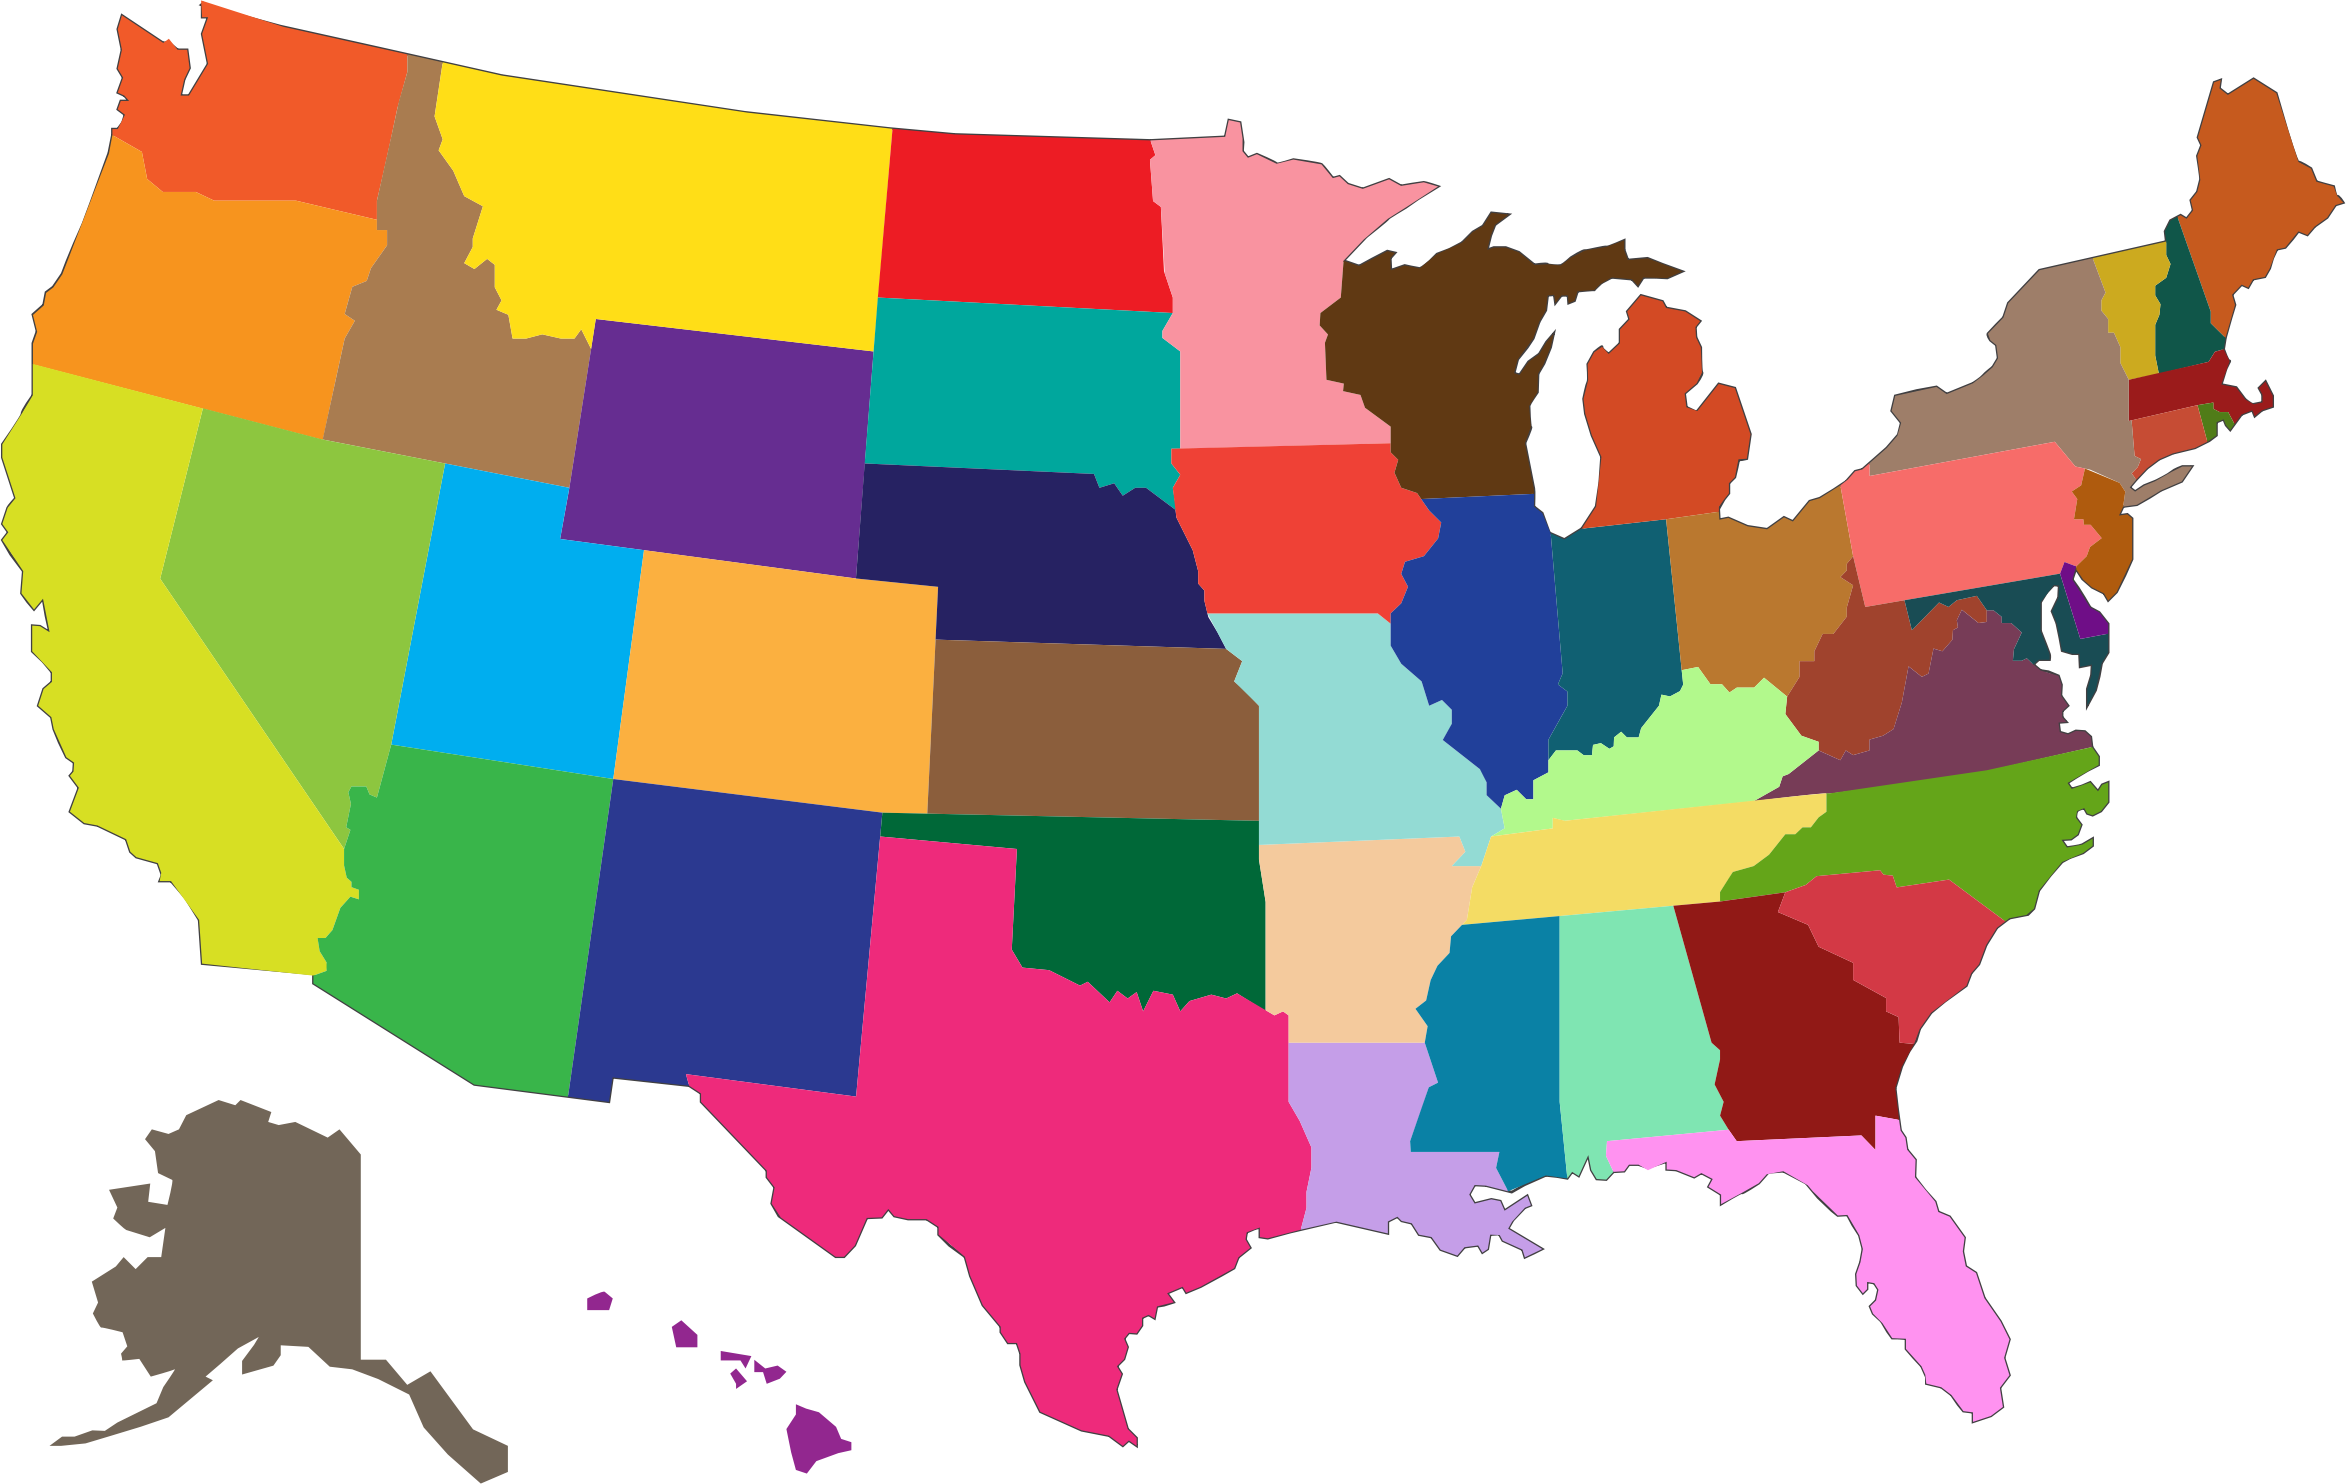 United States in Full Color